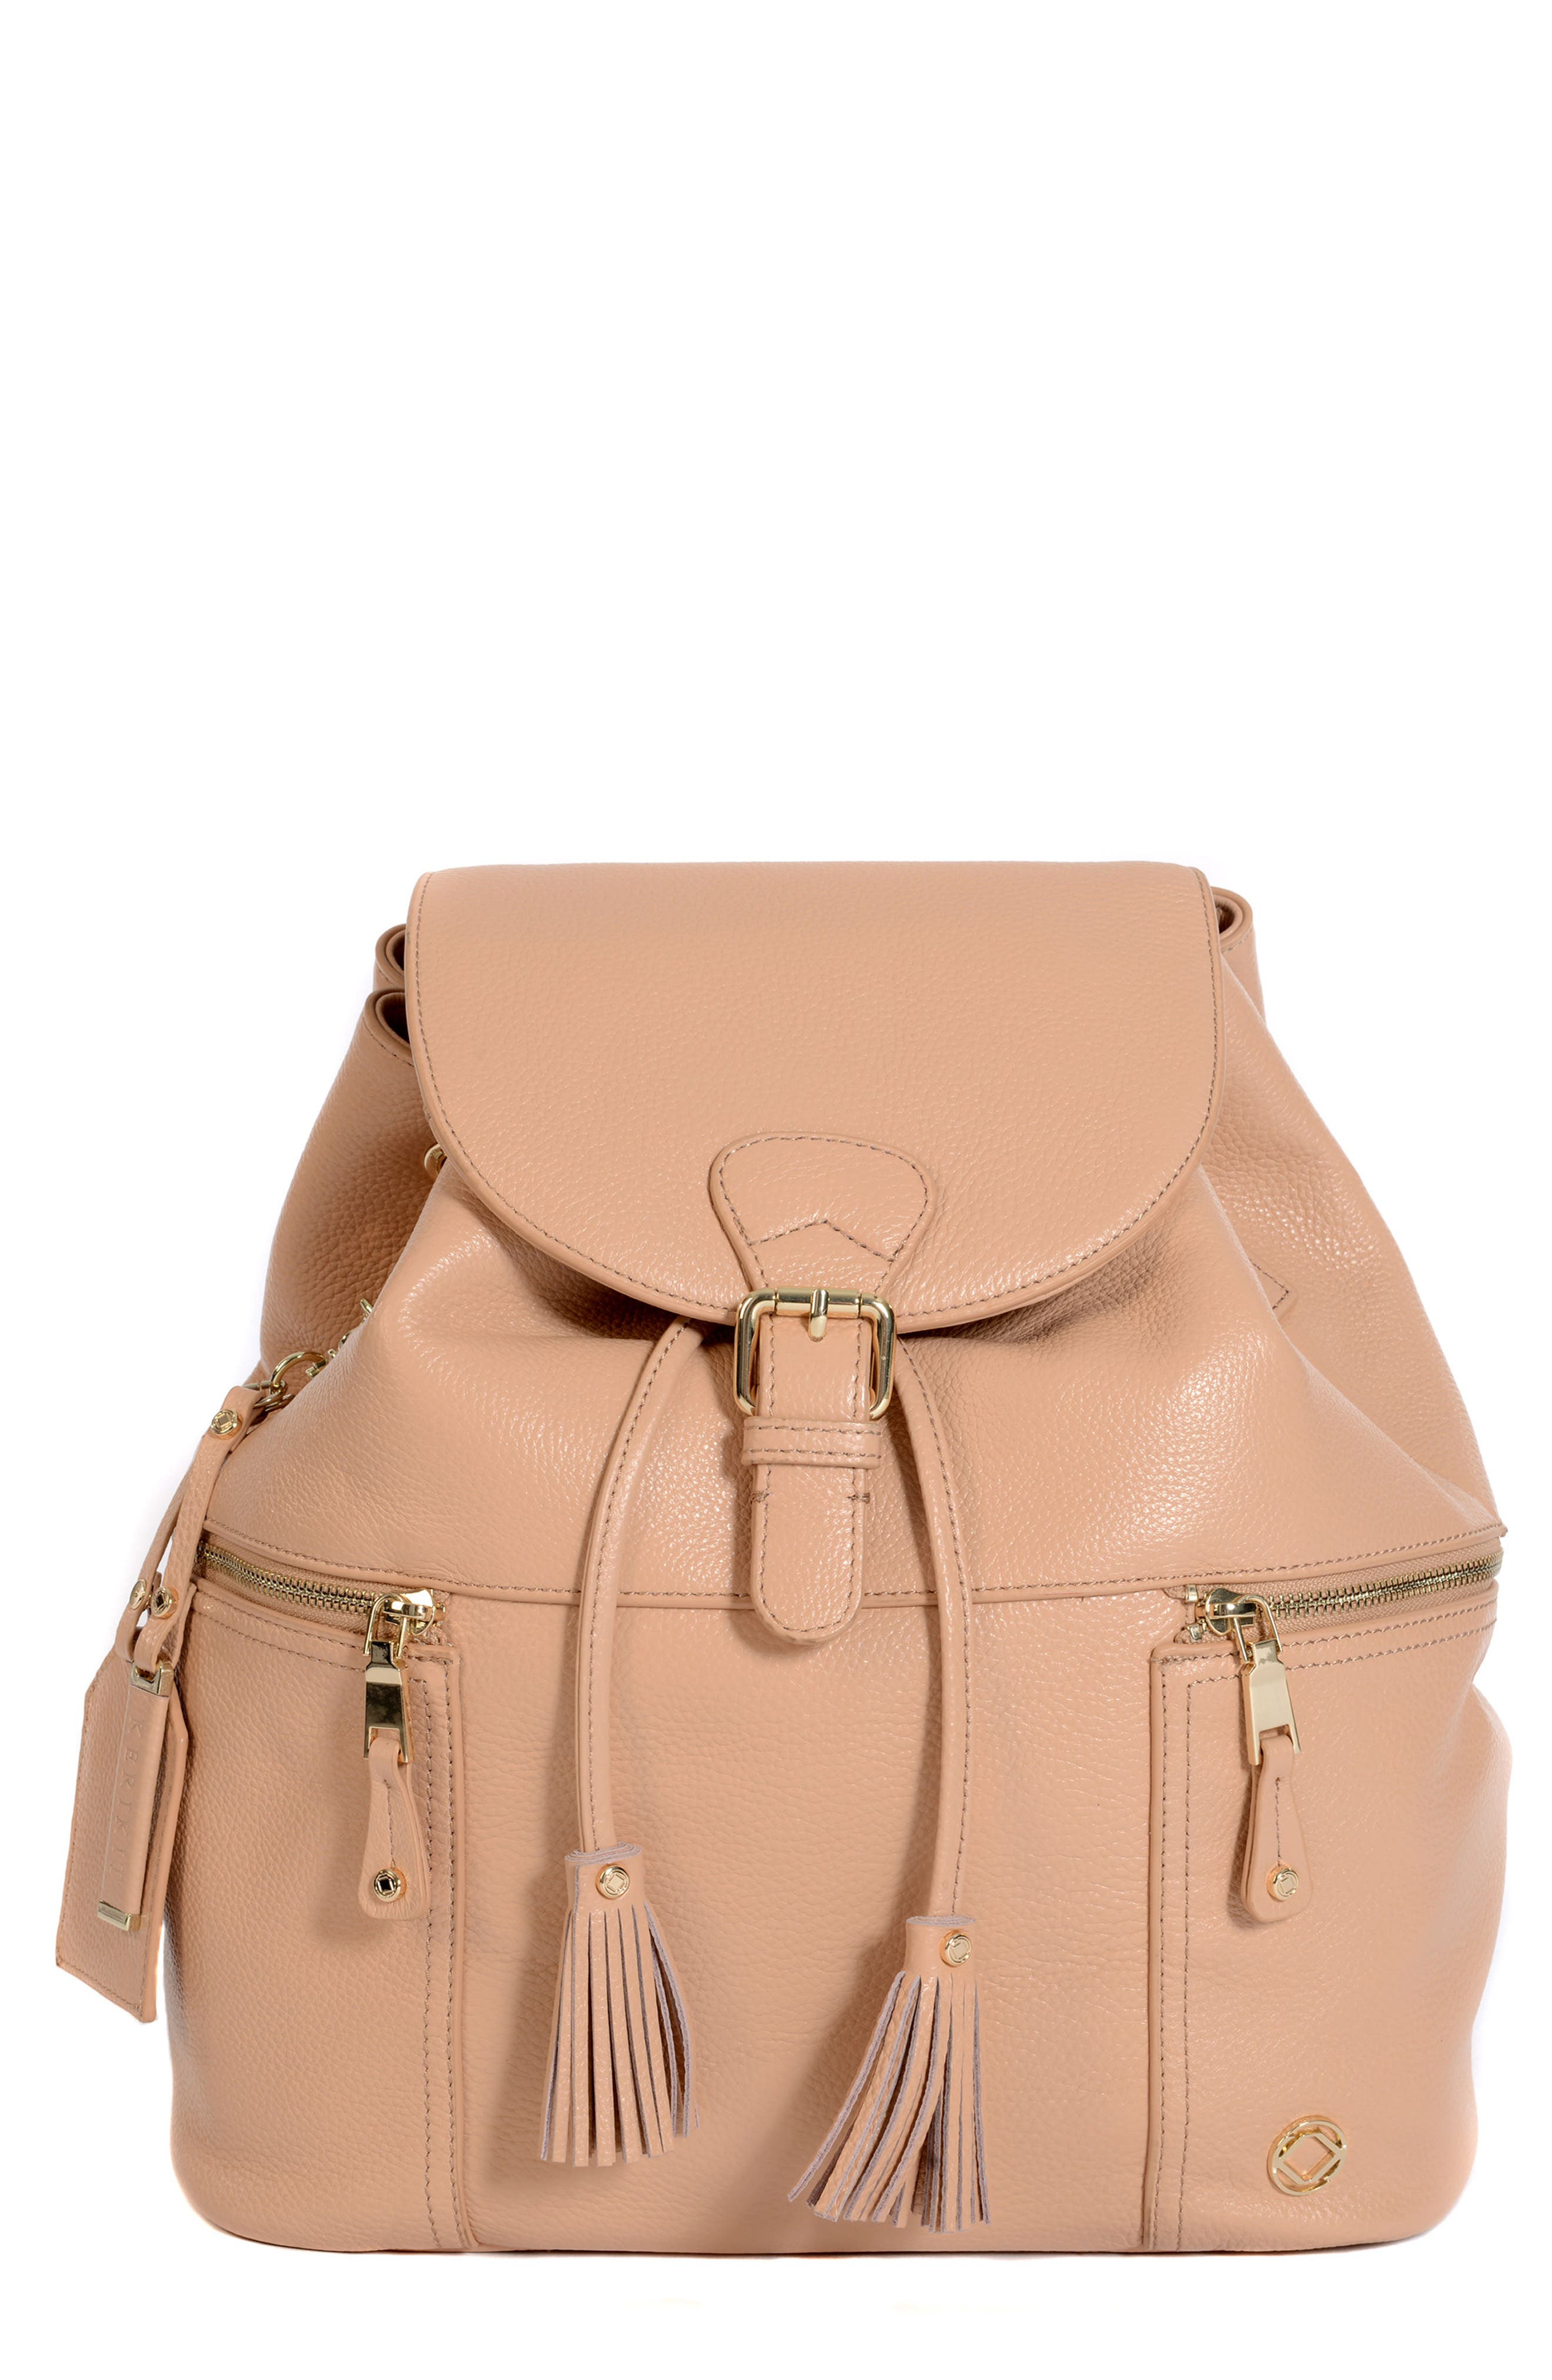 Thor Leather Backpack,                             Main thumbnail 1, color,                             Nude With Gold Hardware